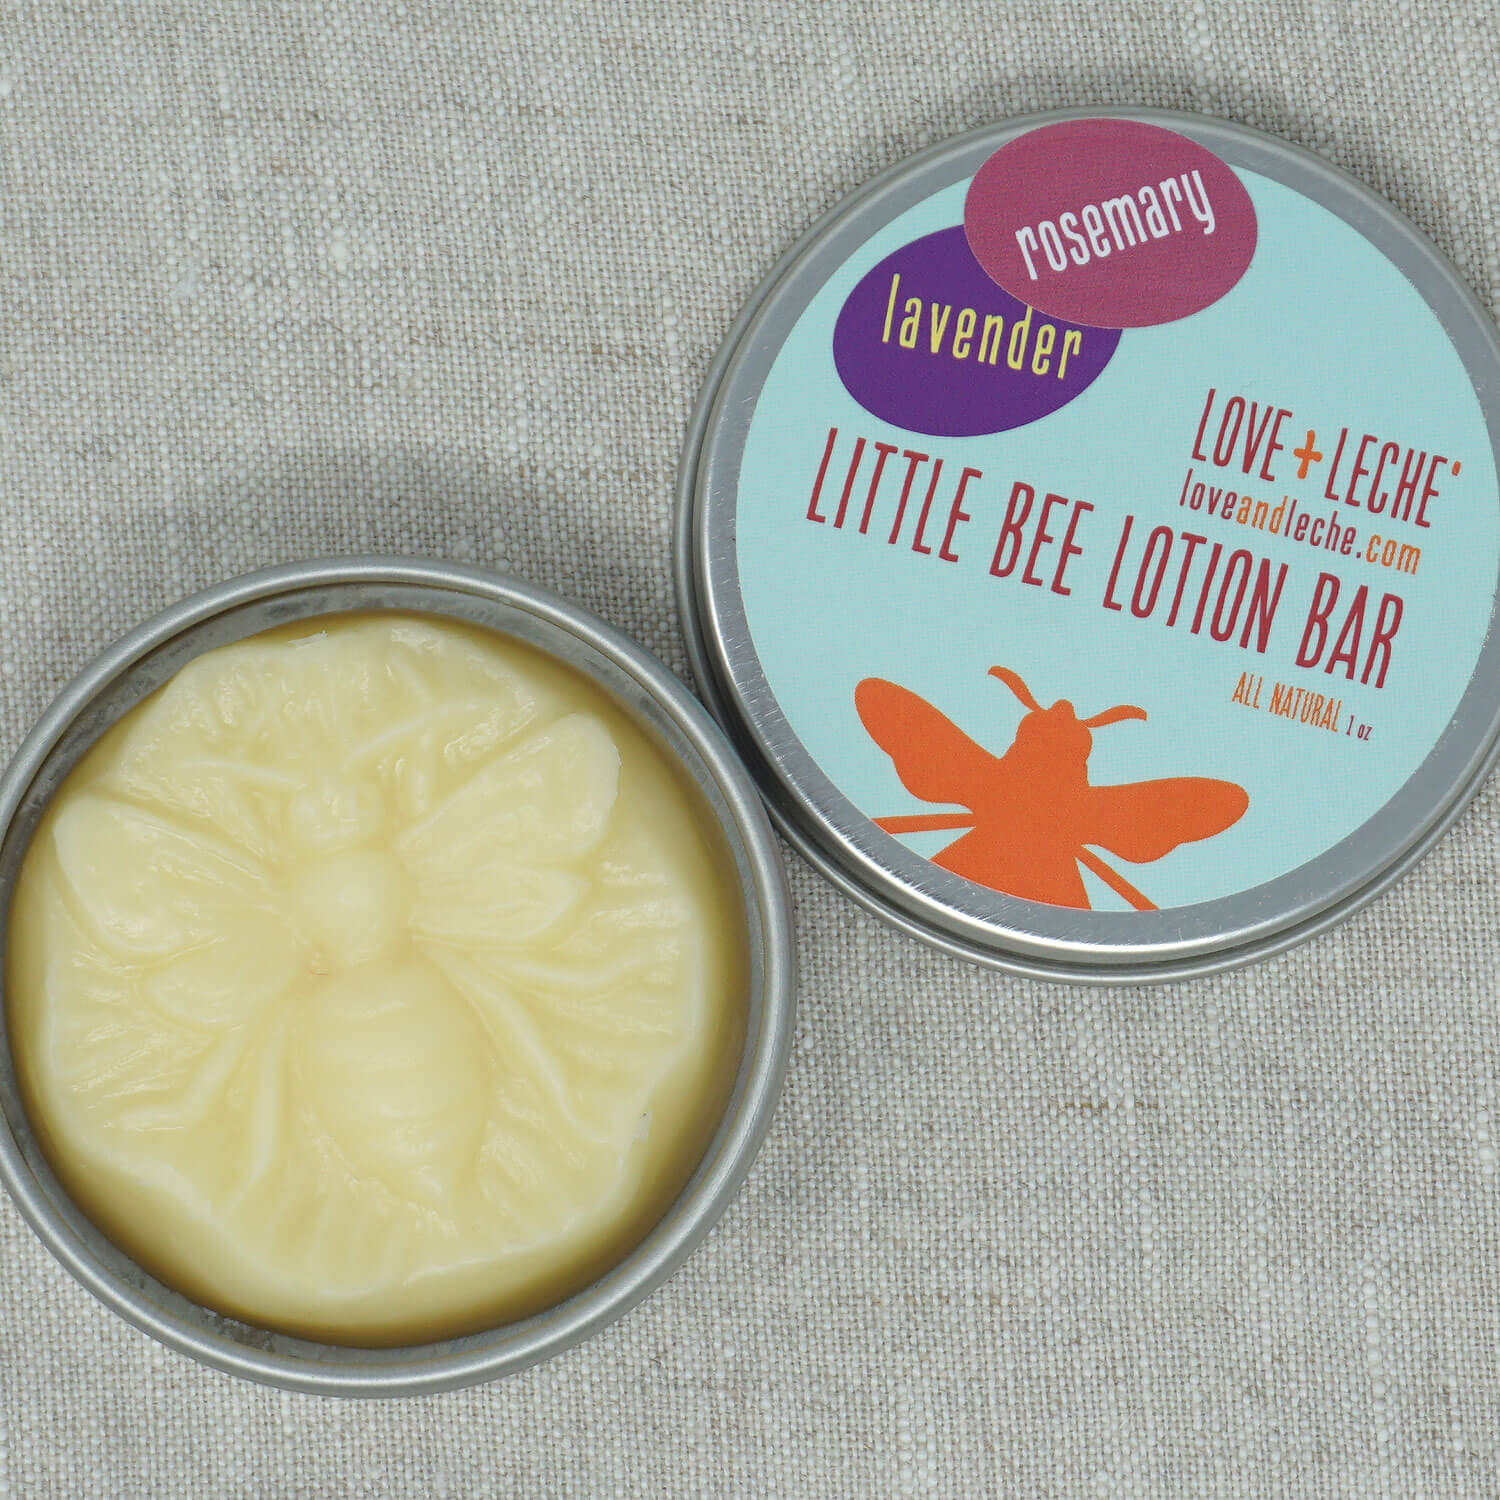 Love + Leche Little Bee Lotion Bar - Lavender & Rosemary | Yarn Worx